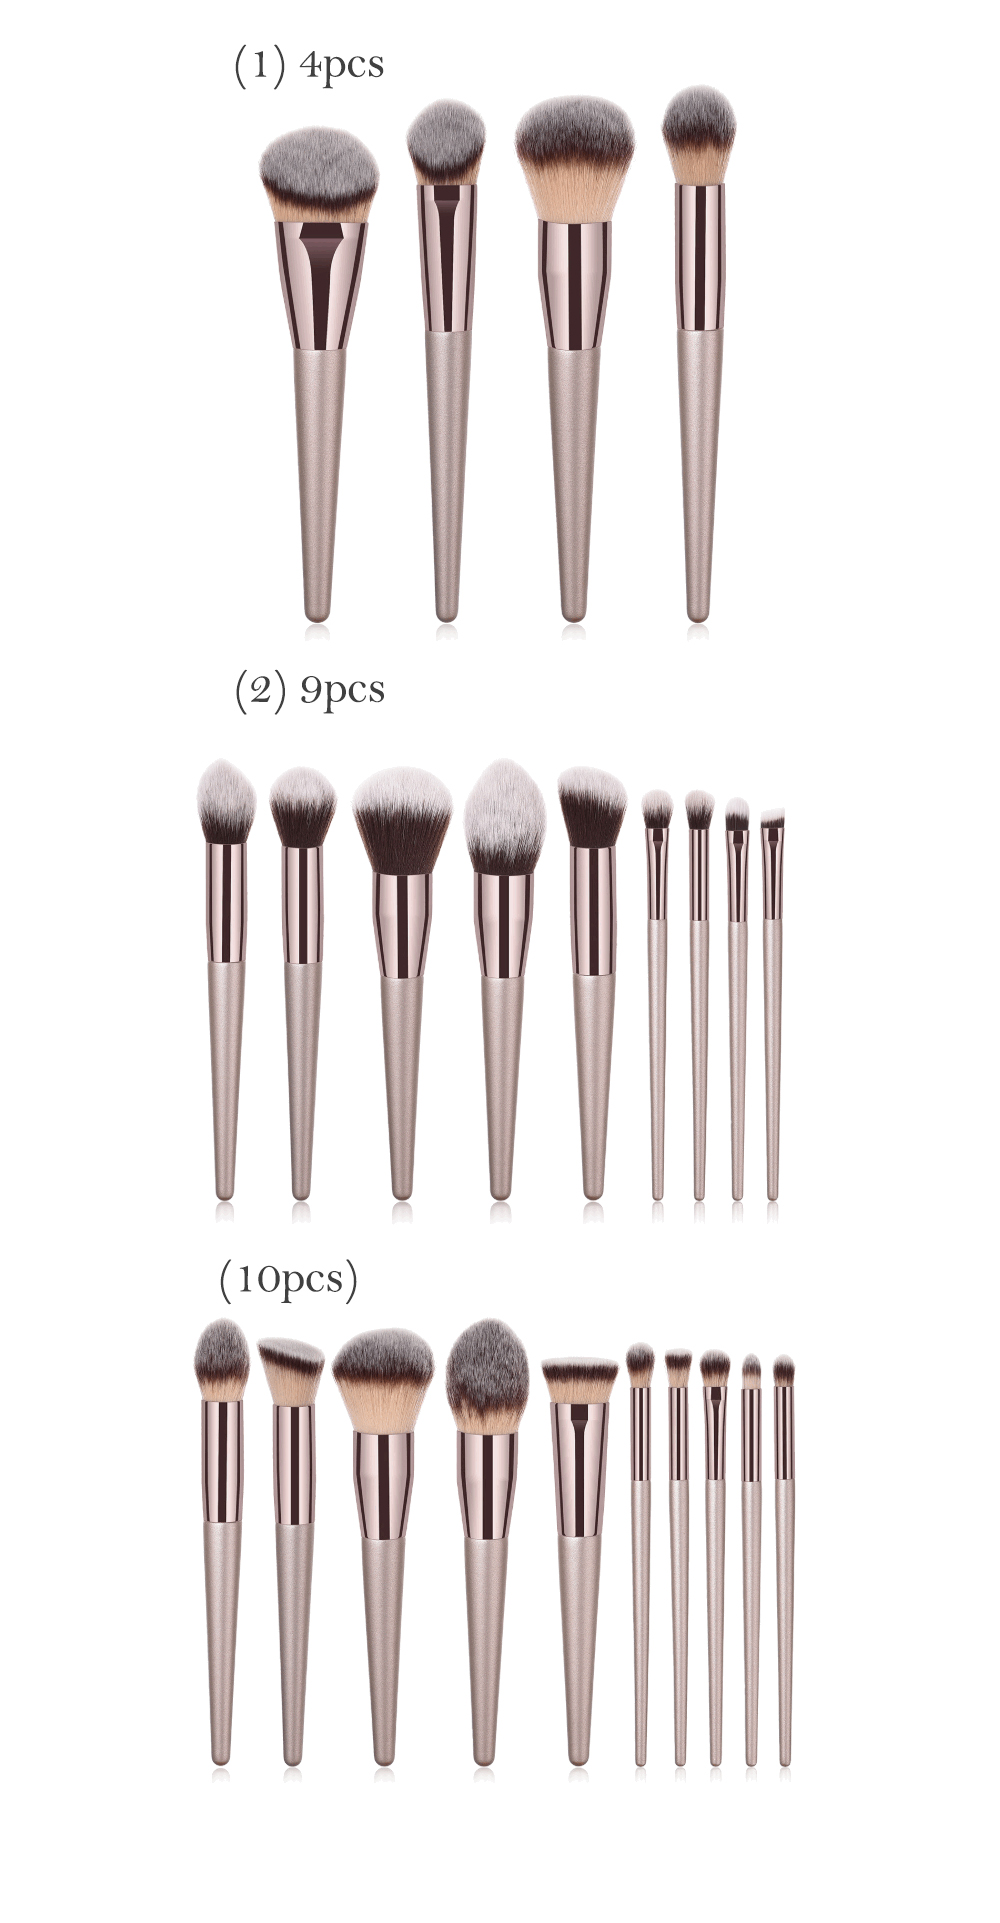 20pcs Amazon your own brand organic oem novelty personalized foundation kabuki make-up cosmetic set make up makeup brush